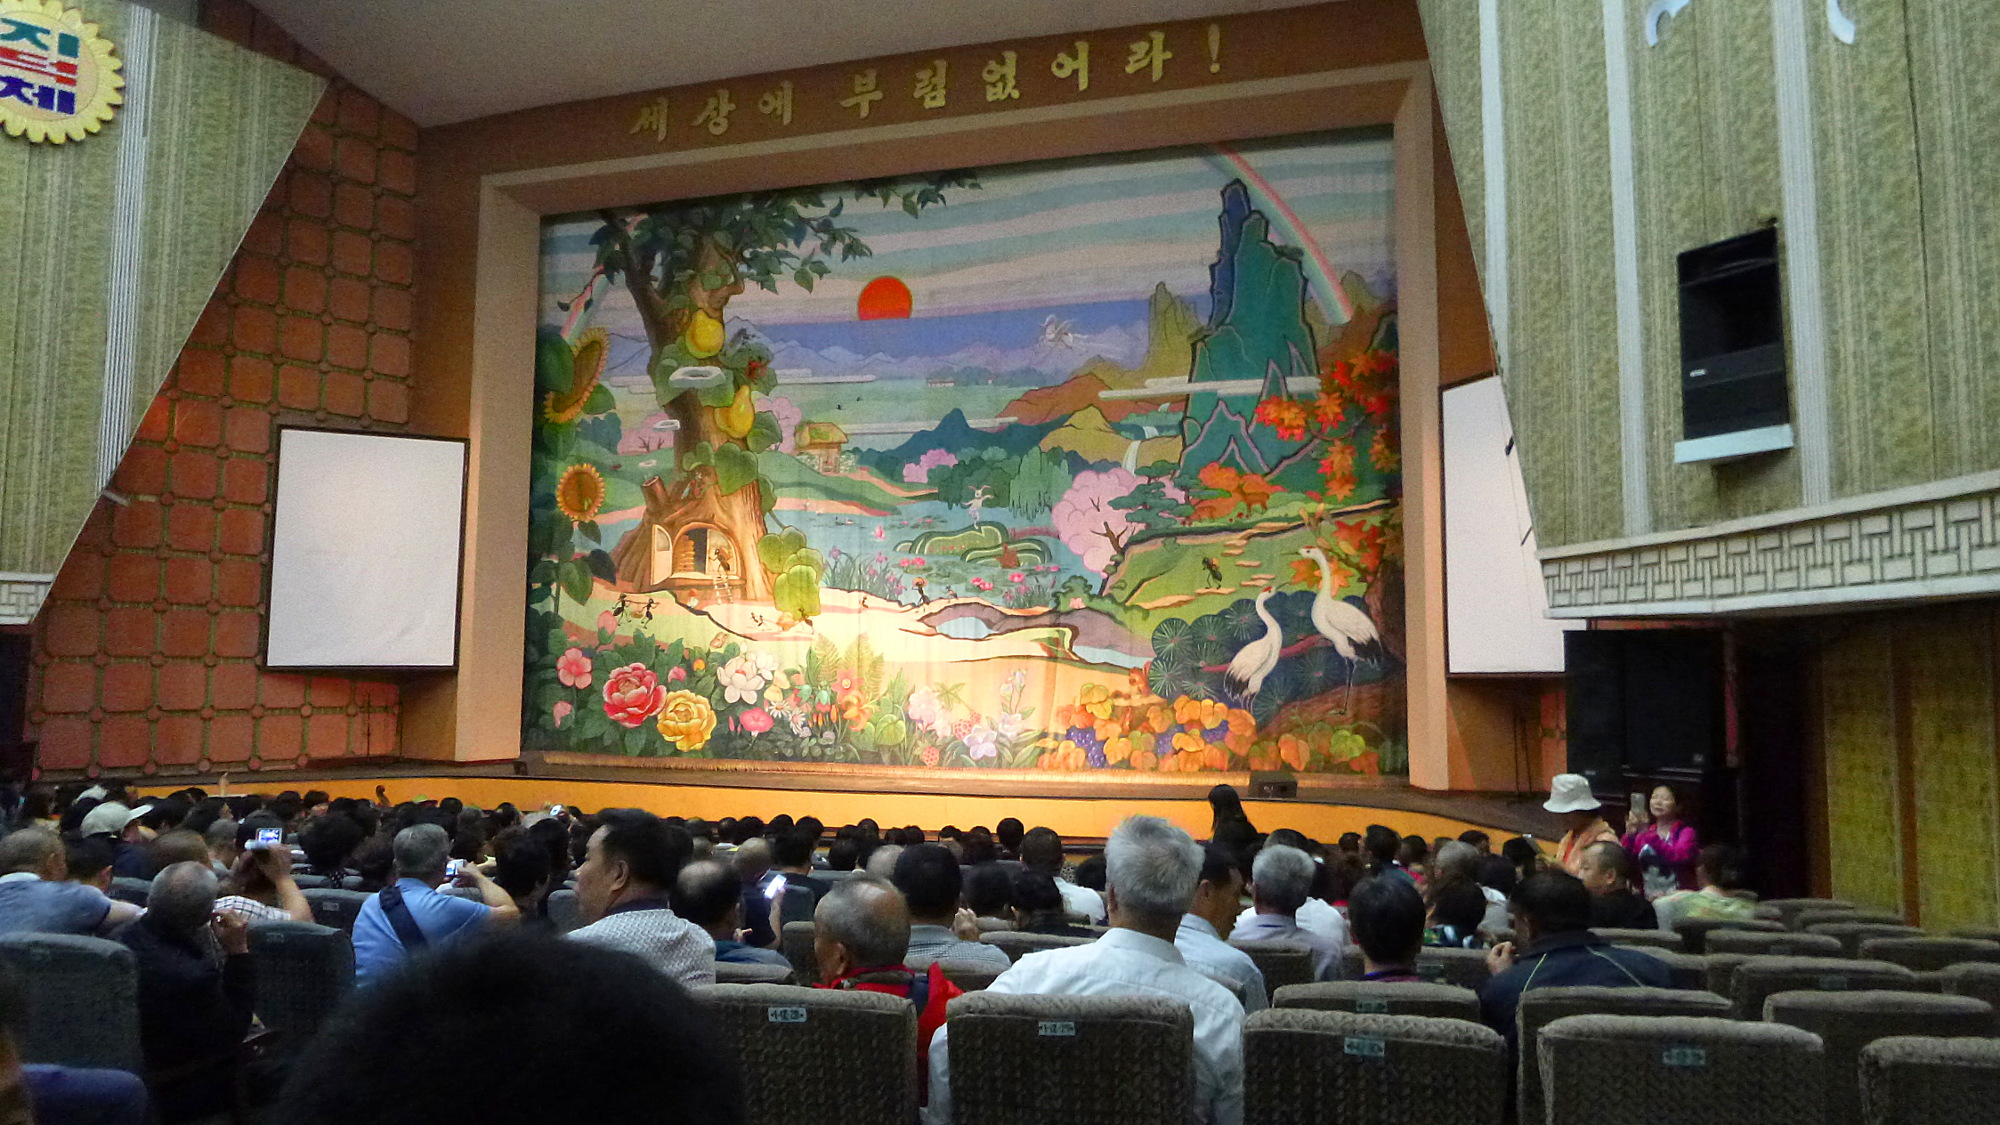 When tourists visit North Korea, they are almost always taken to see performances in Mangyongdae Children's Palace.